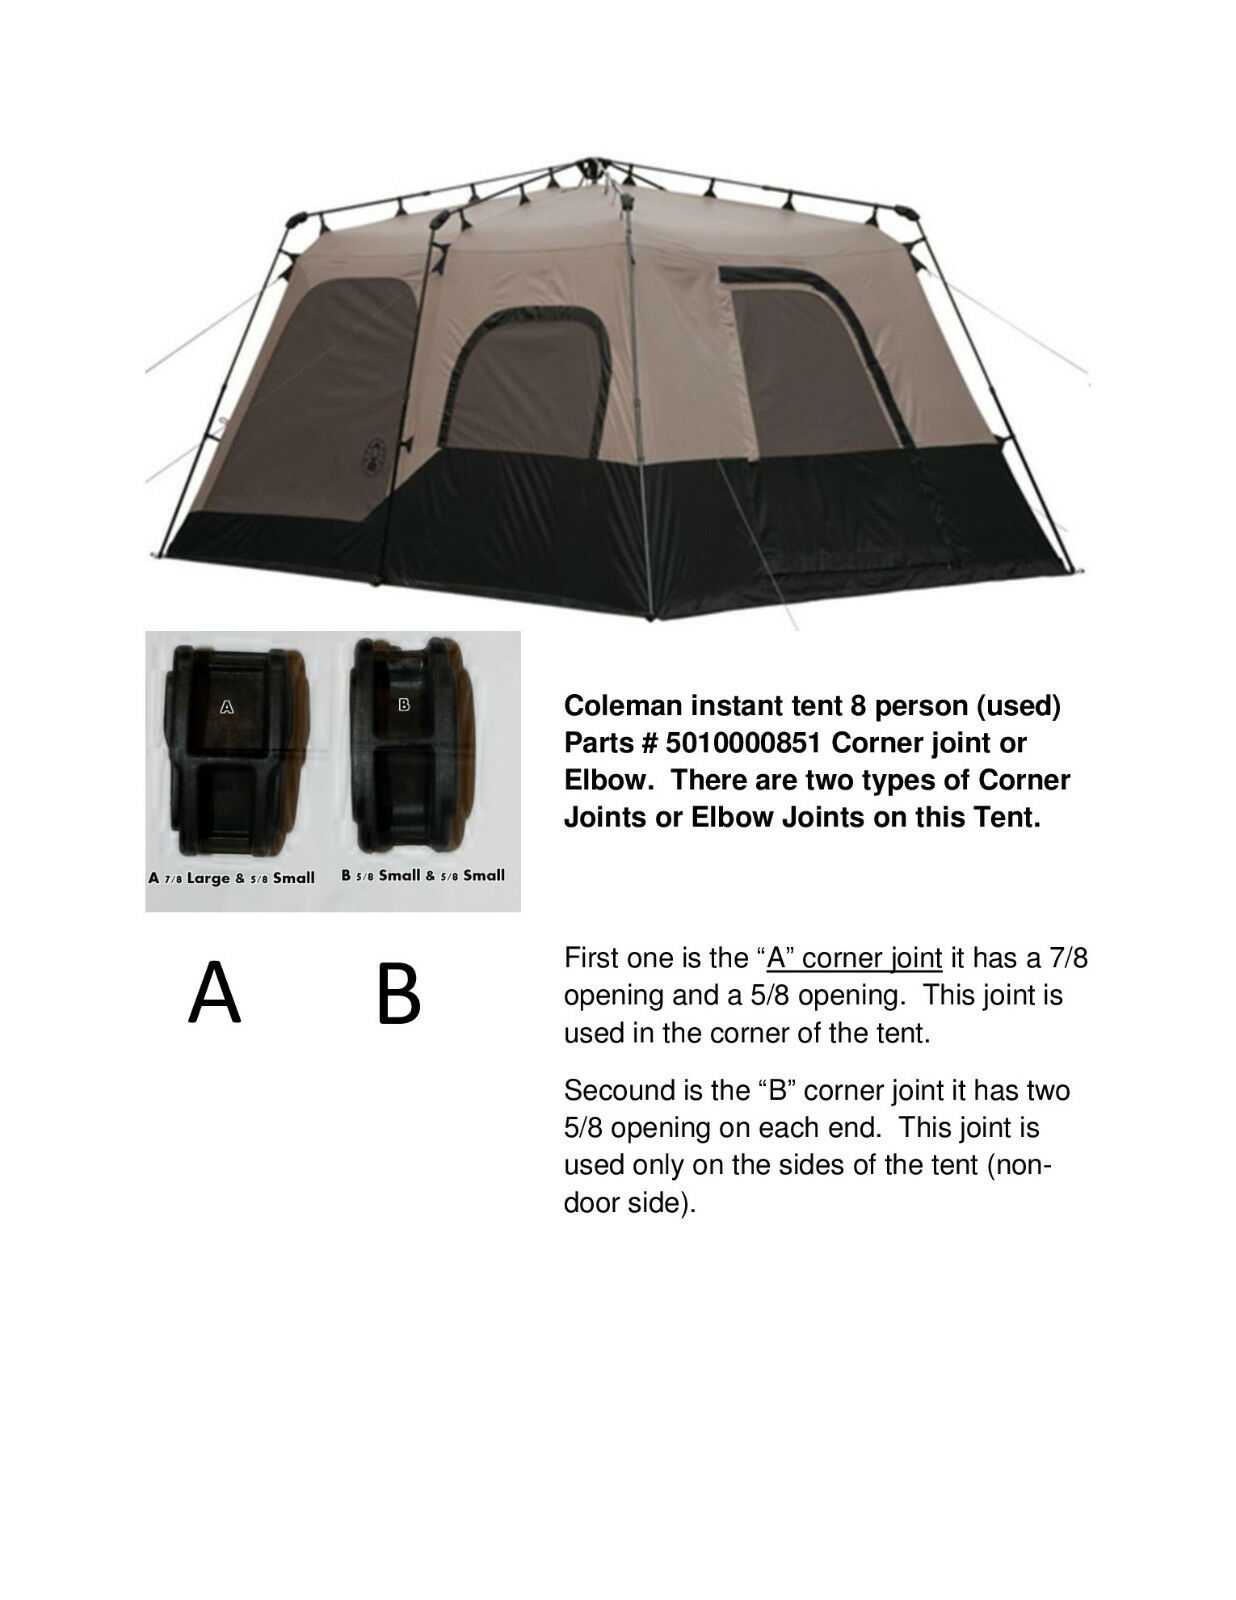 Coleman instant tent 8, 10 person Parts # 501000851 (16-16-130 or 22-16-125)